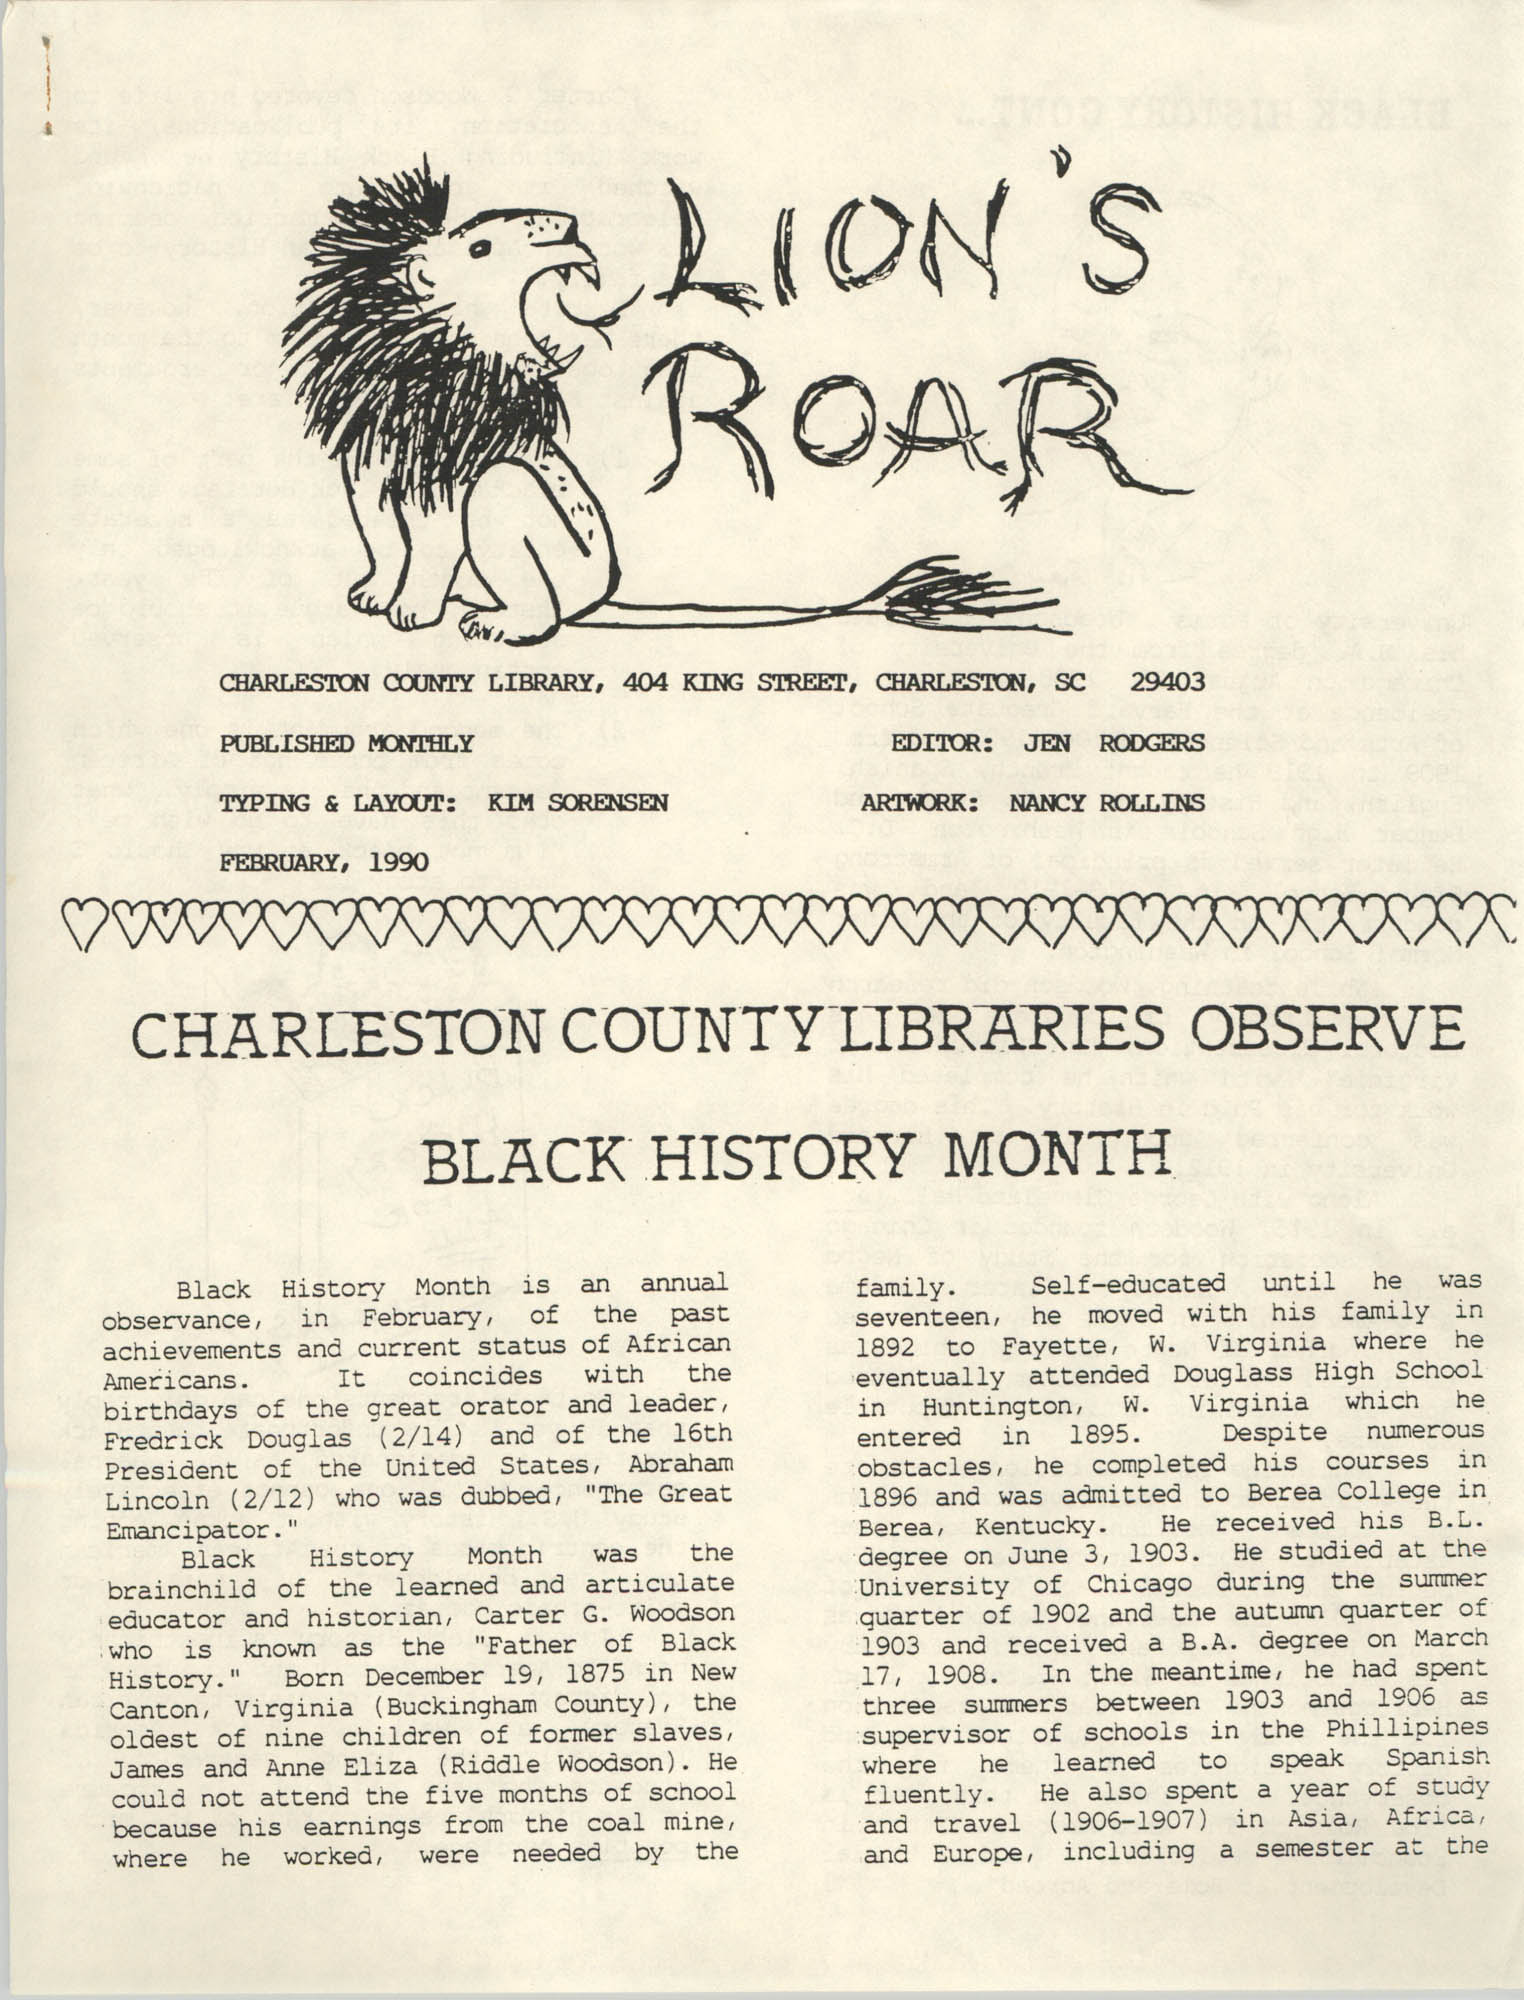 The Lion's Roar, February 1990, Page 1